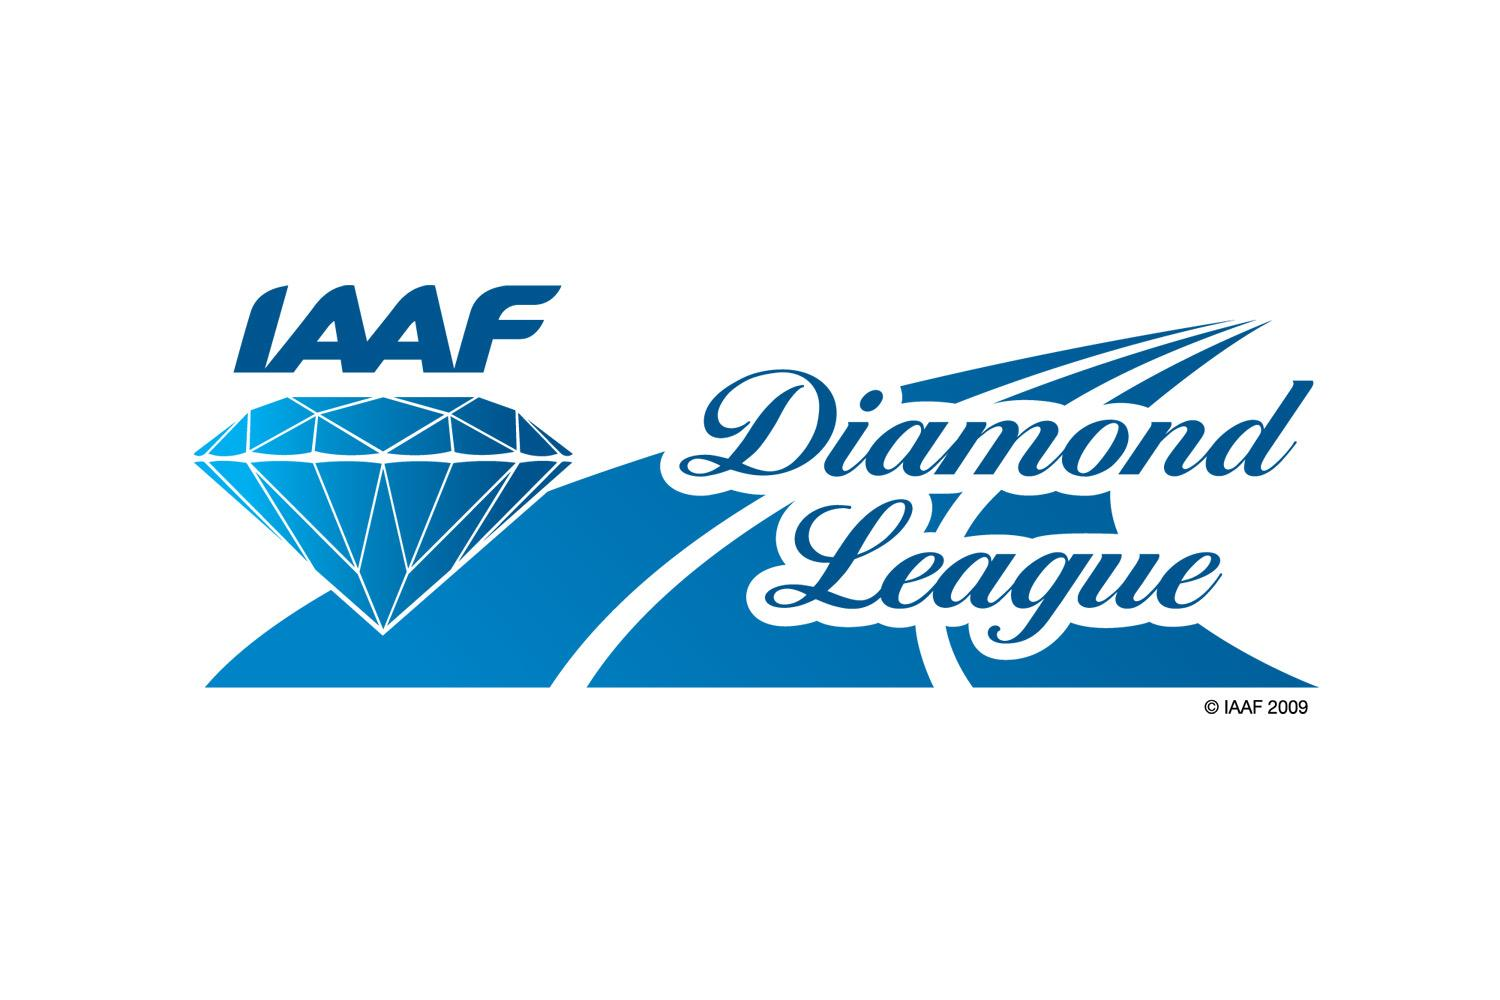 IAAF Diamond League (IAAF)